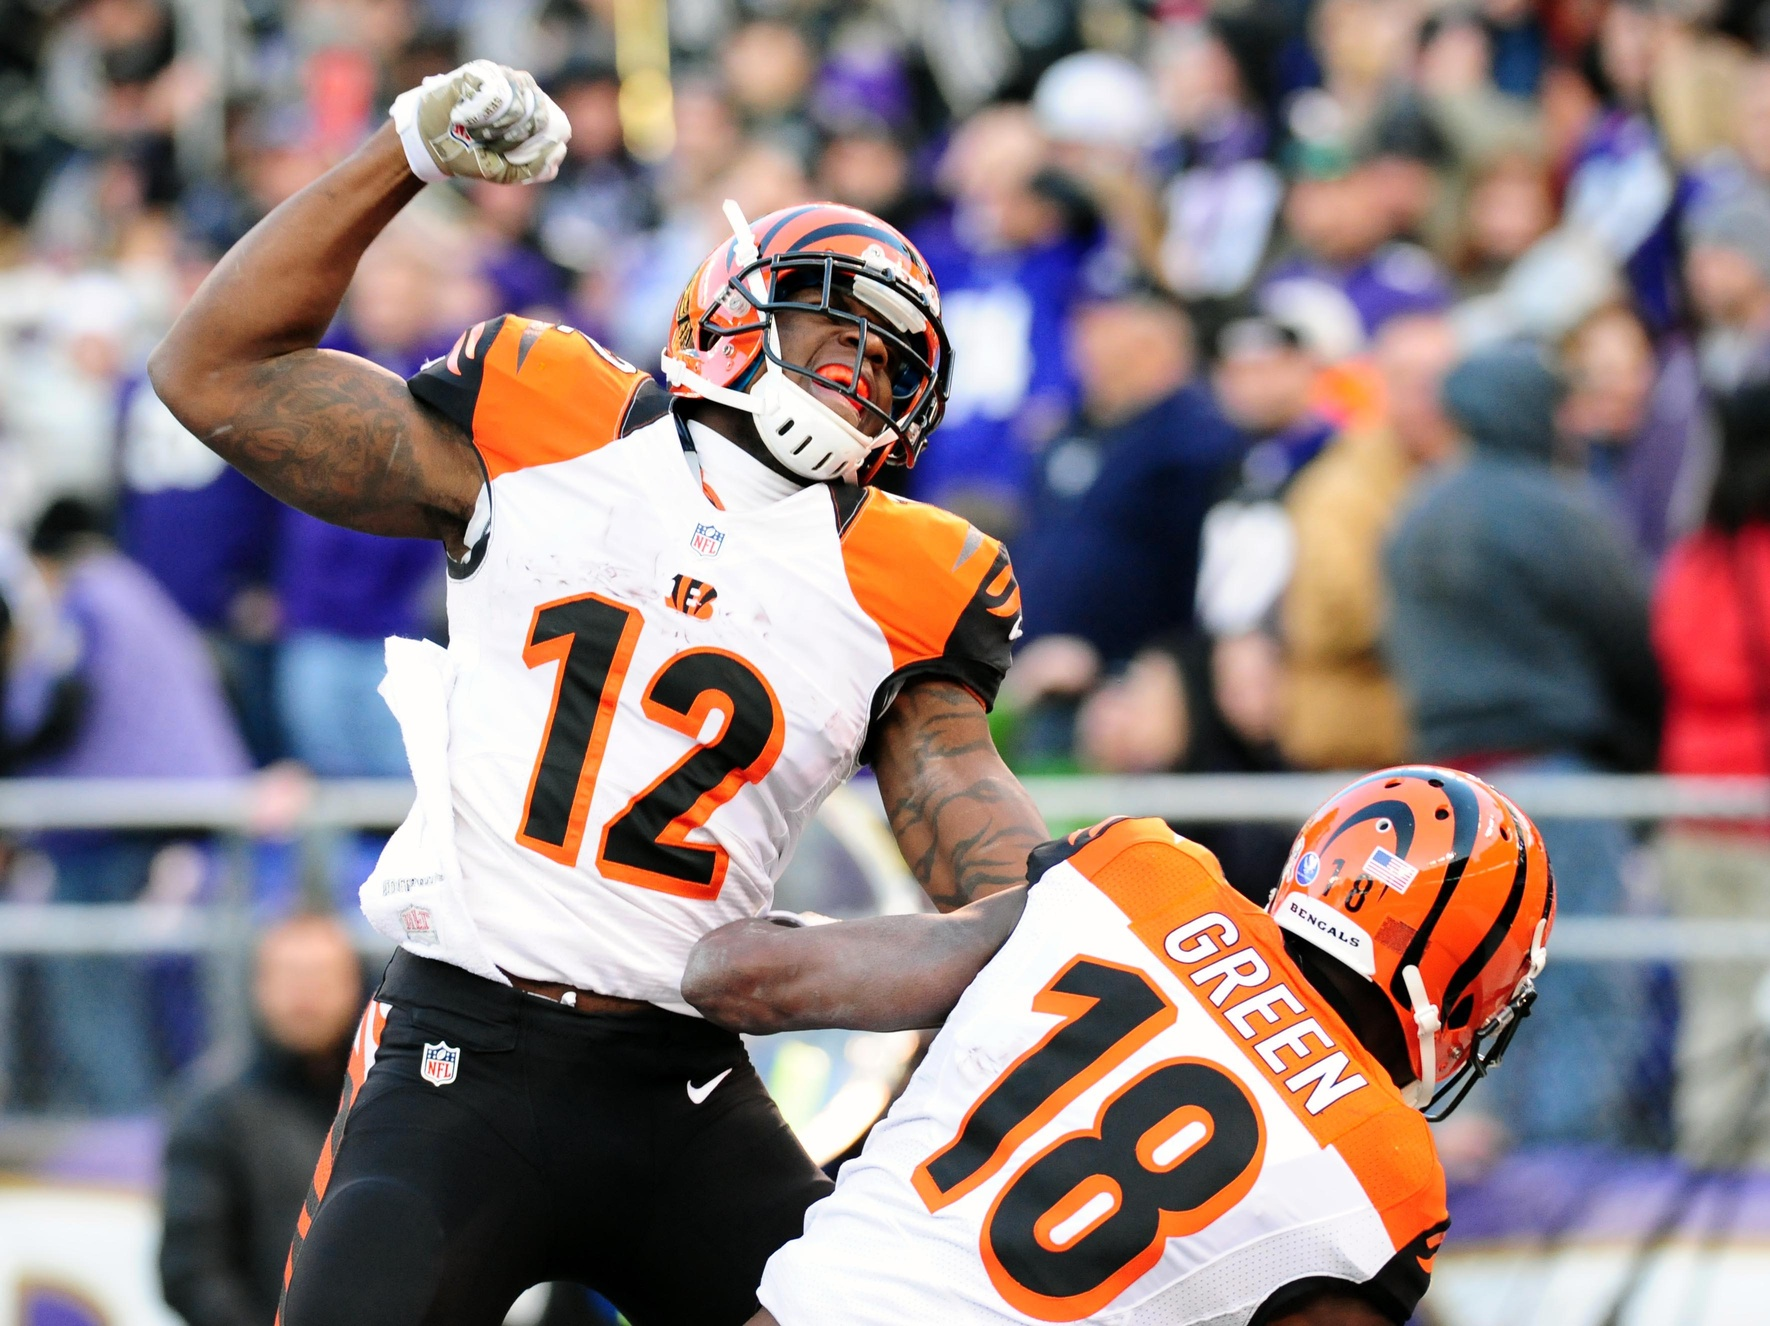 The Bengals celebrate following an improbable Hail Mary touchdown.